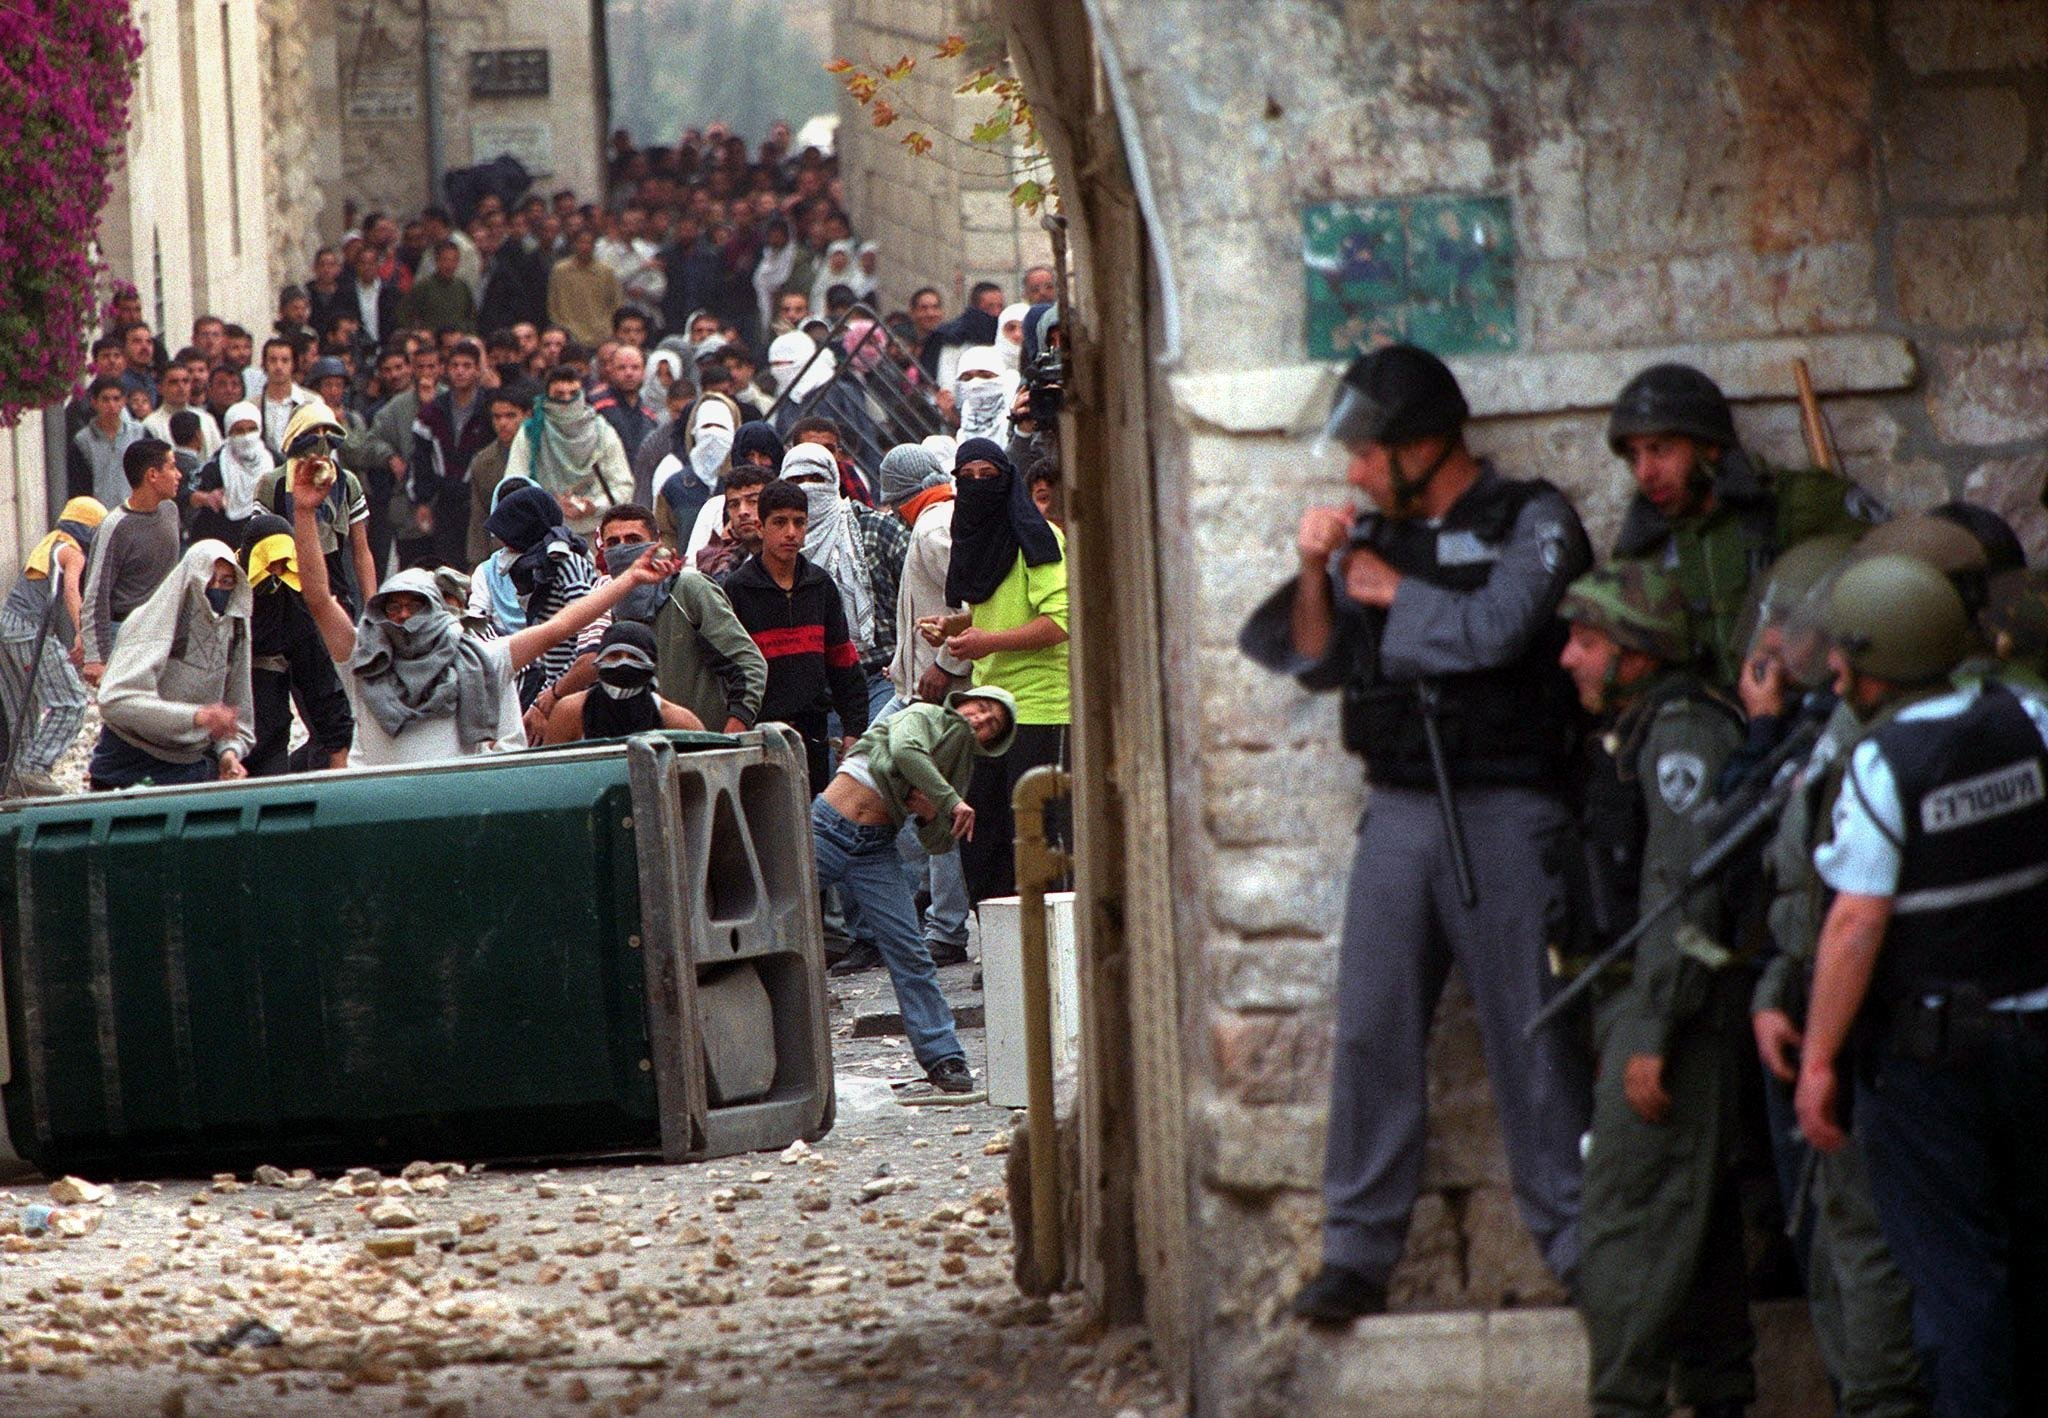 Israeli borderguards take cover from Palestinian stone-throwers in Jerusalem's Old City outside the al-Aqsa mosque compound 08 December 2000, as clashes erupted following the second Friday noon prayer in the holy month of the Ramada